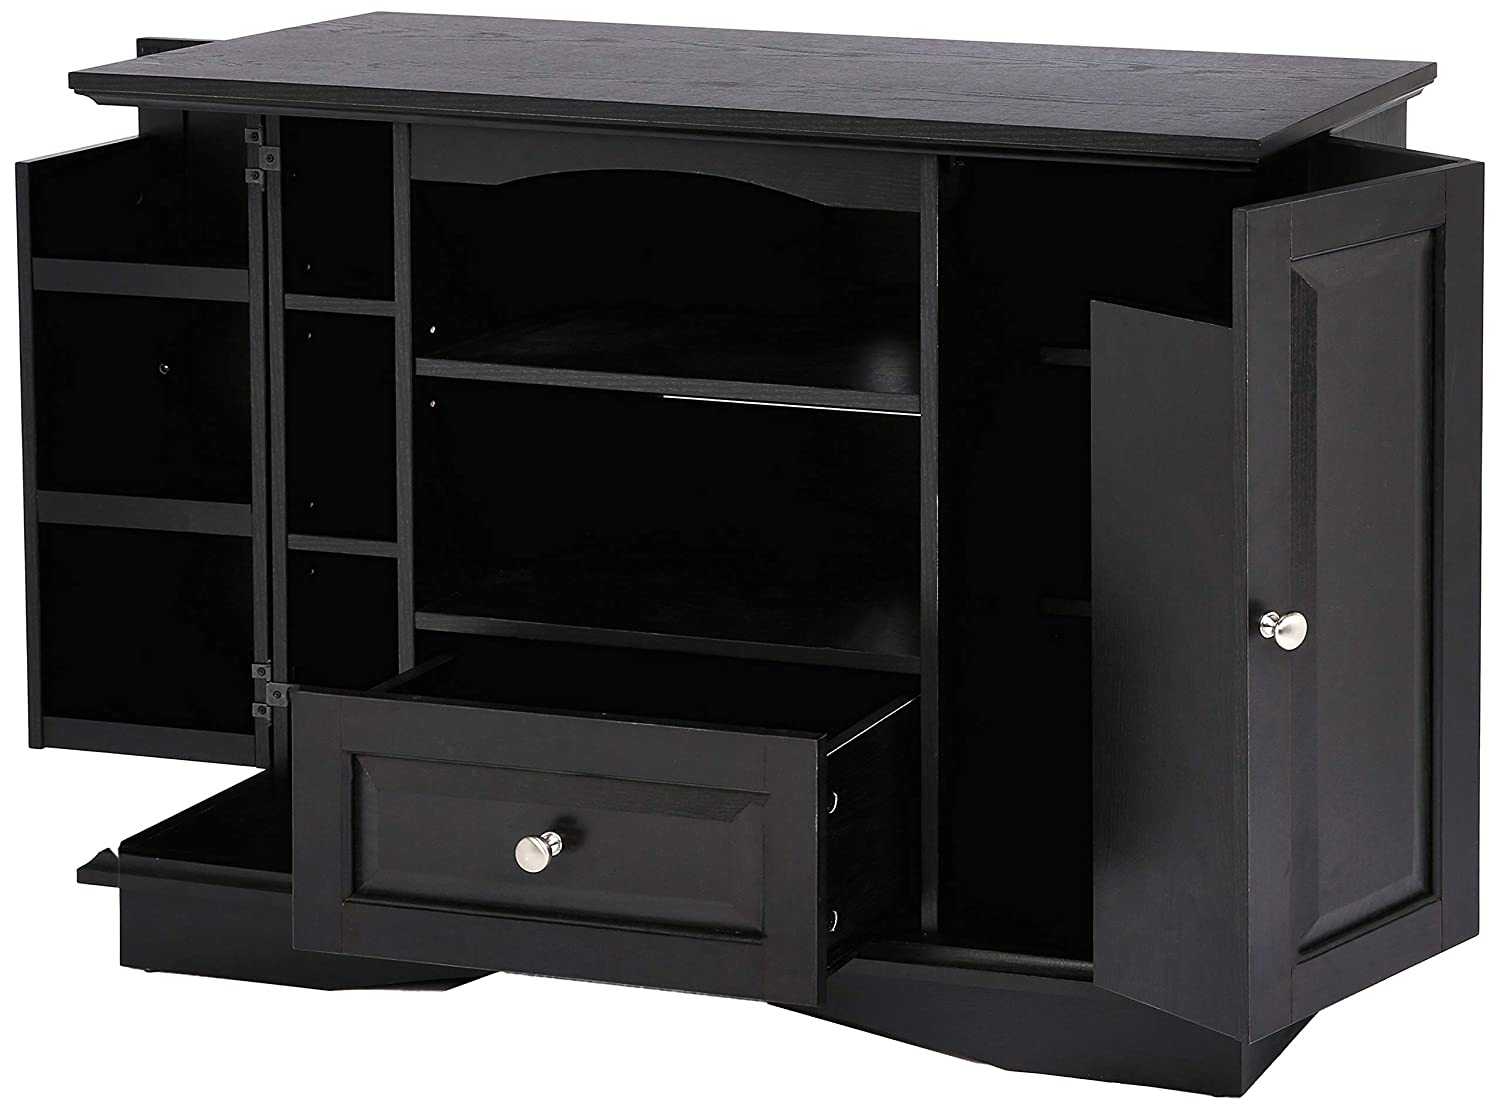 Rockpoint Milano Highboy-Style Wood TV Stand Media Console, 42-Inch, Espresso Black